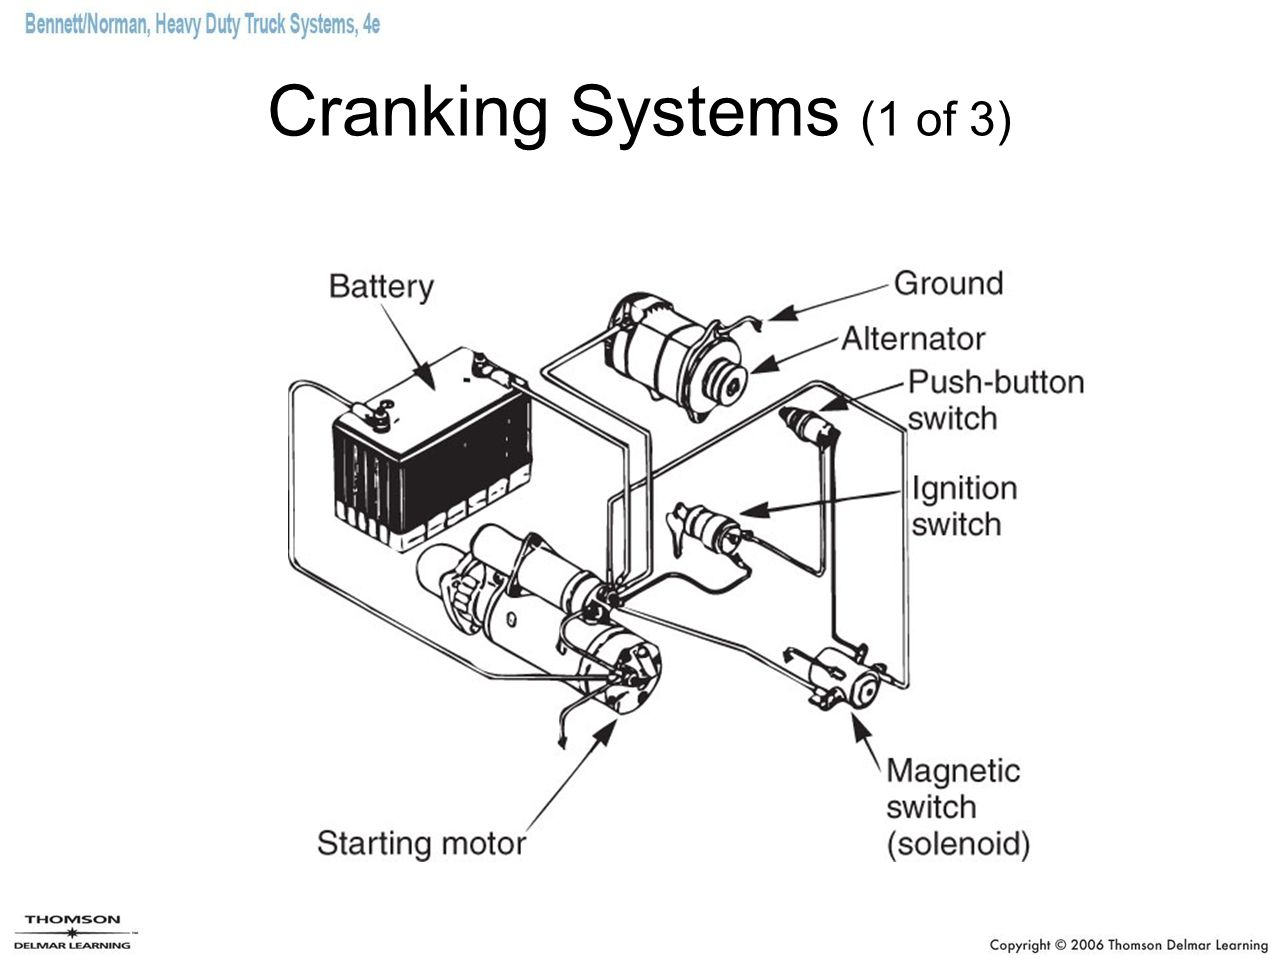 Chapter 9 Cranking Systems